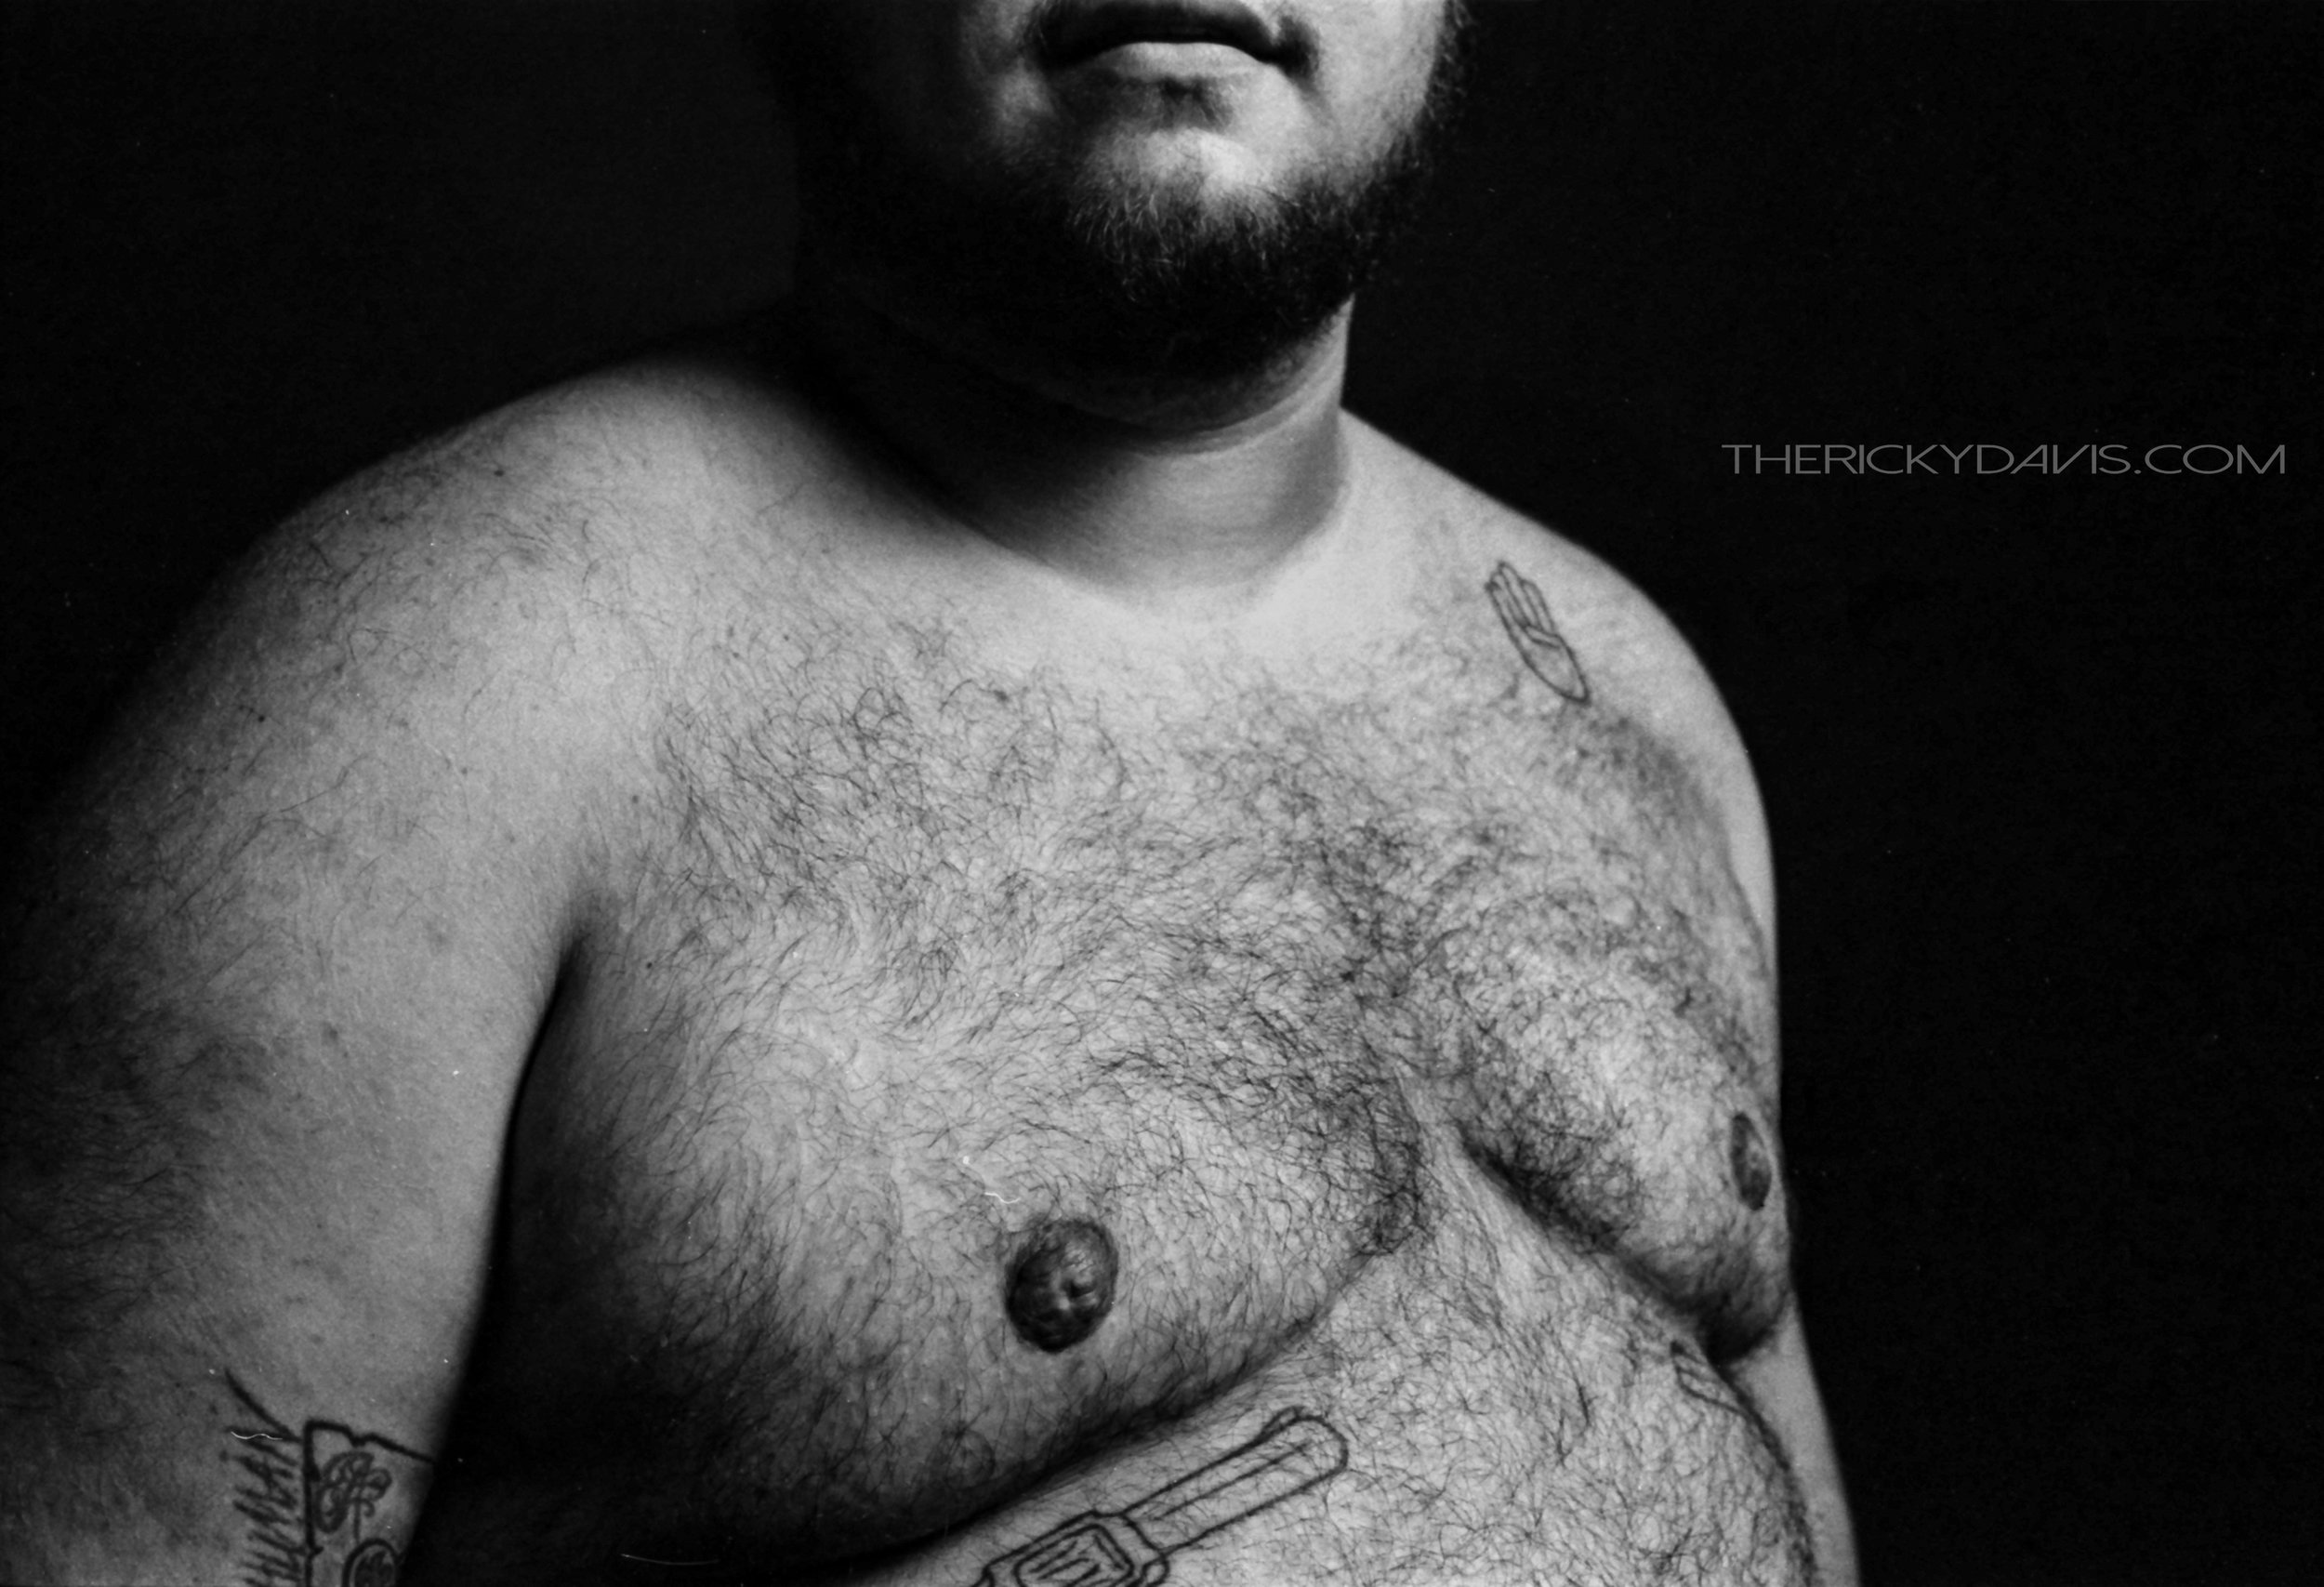 Beauty Redefined Series - Post #5 - Andrew - Photographer Ricky Davis